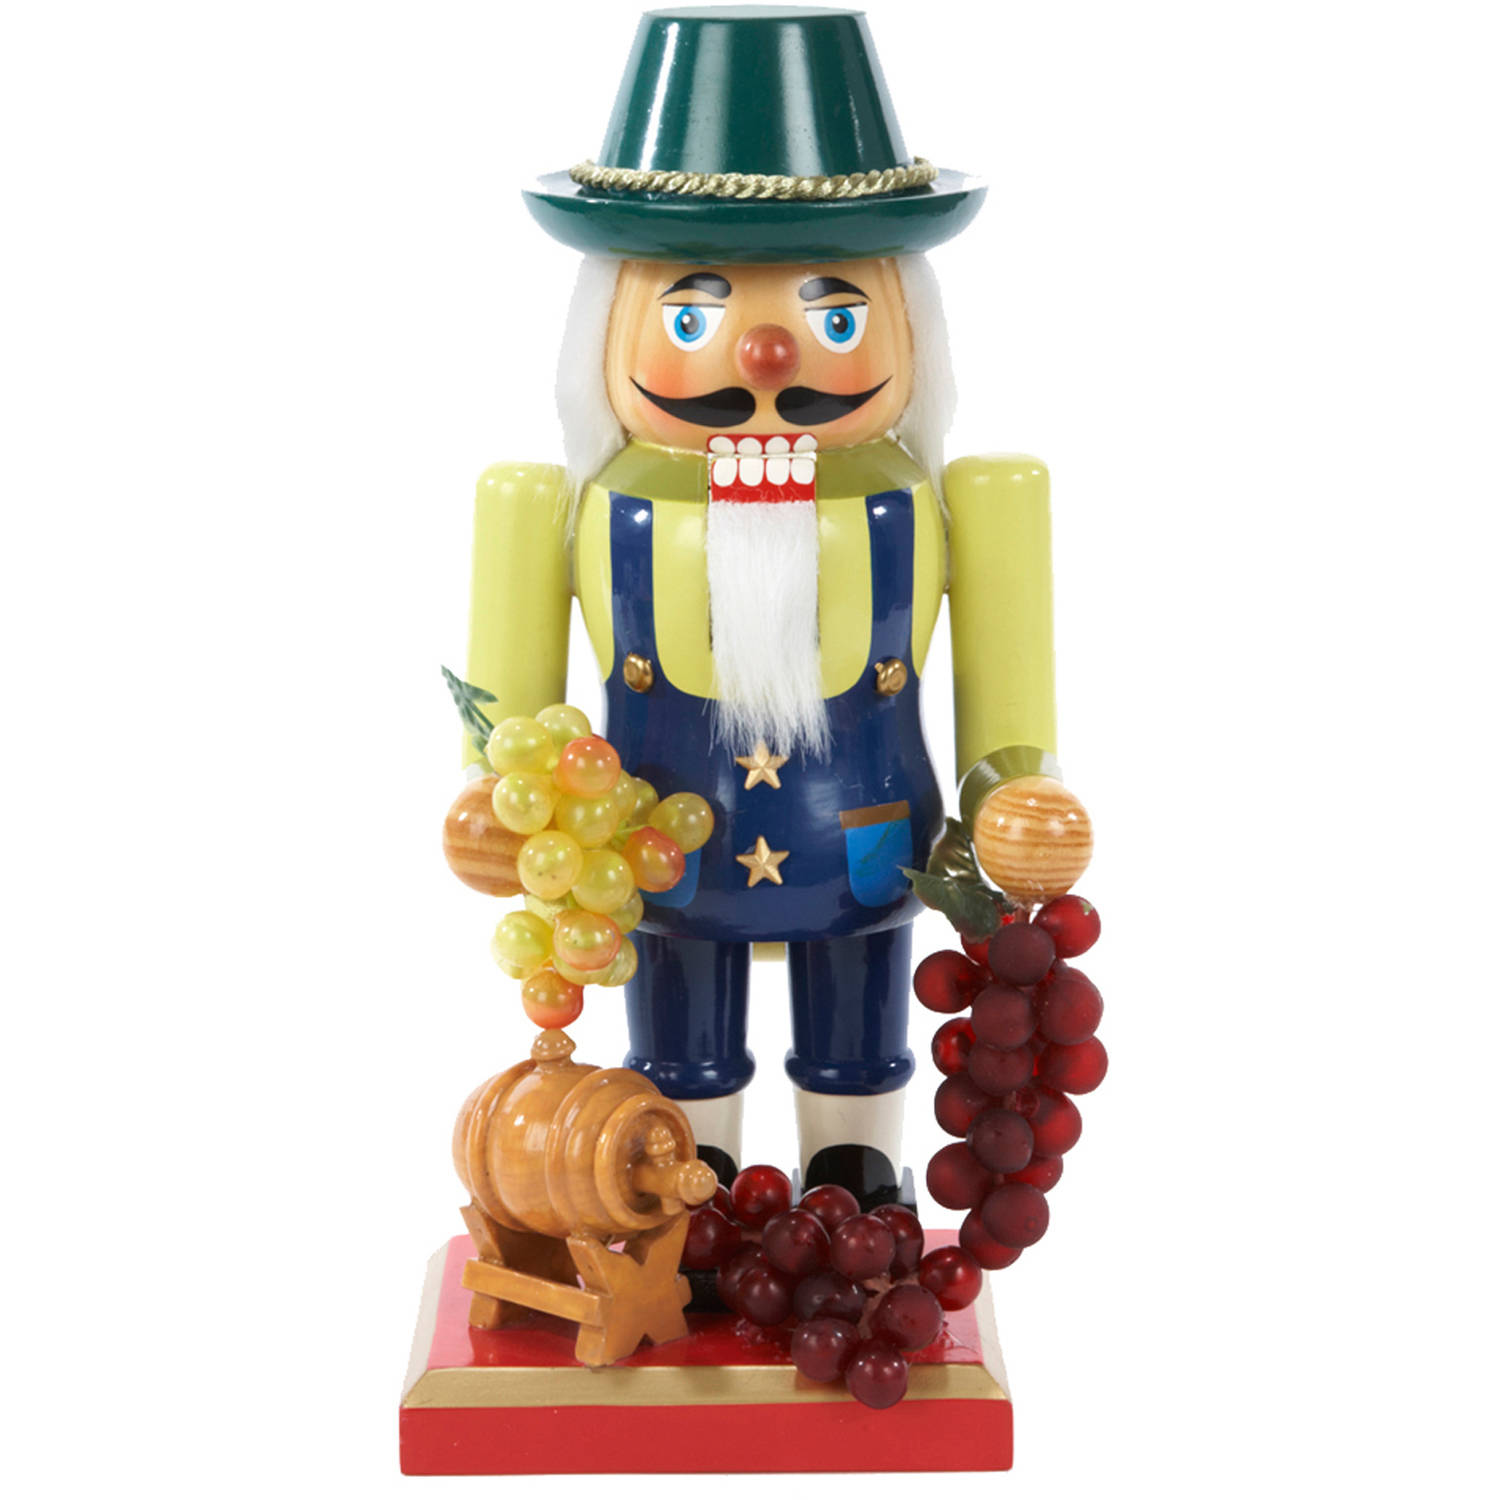 "Kurt Adler 10.25"" Wooden Winemaker Nutcracker"